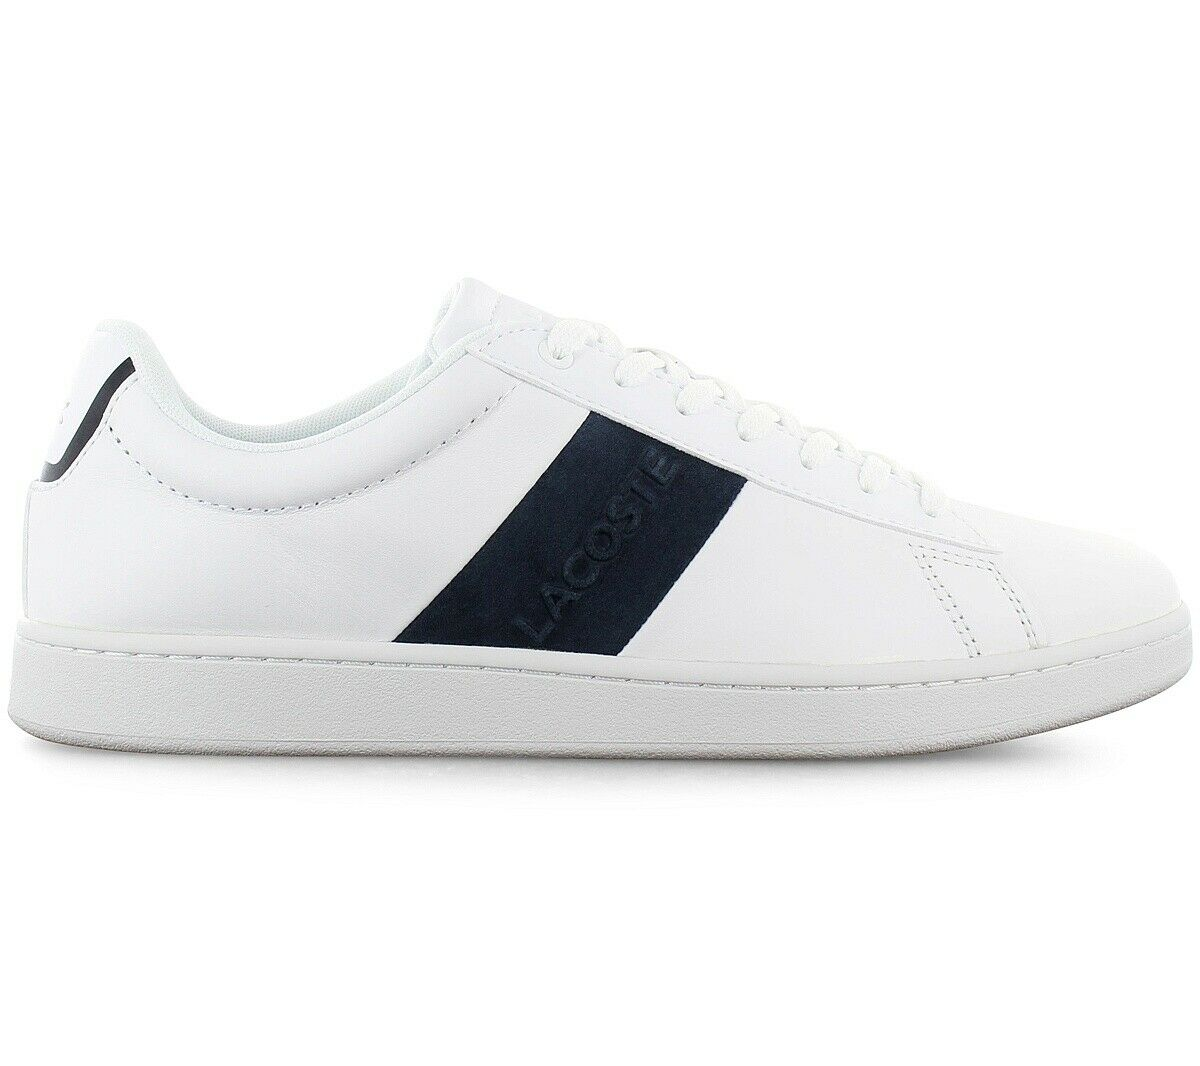 Lacoste carnaby evo 0120 Men's Sneaker White 7-40SMA0003042 Casual Shoes New